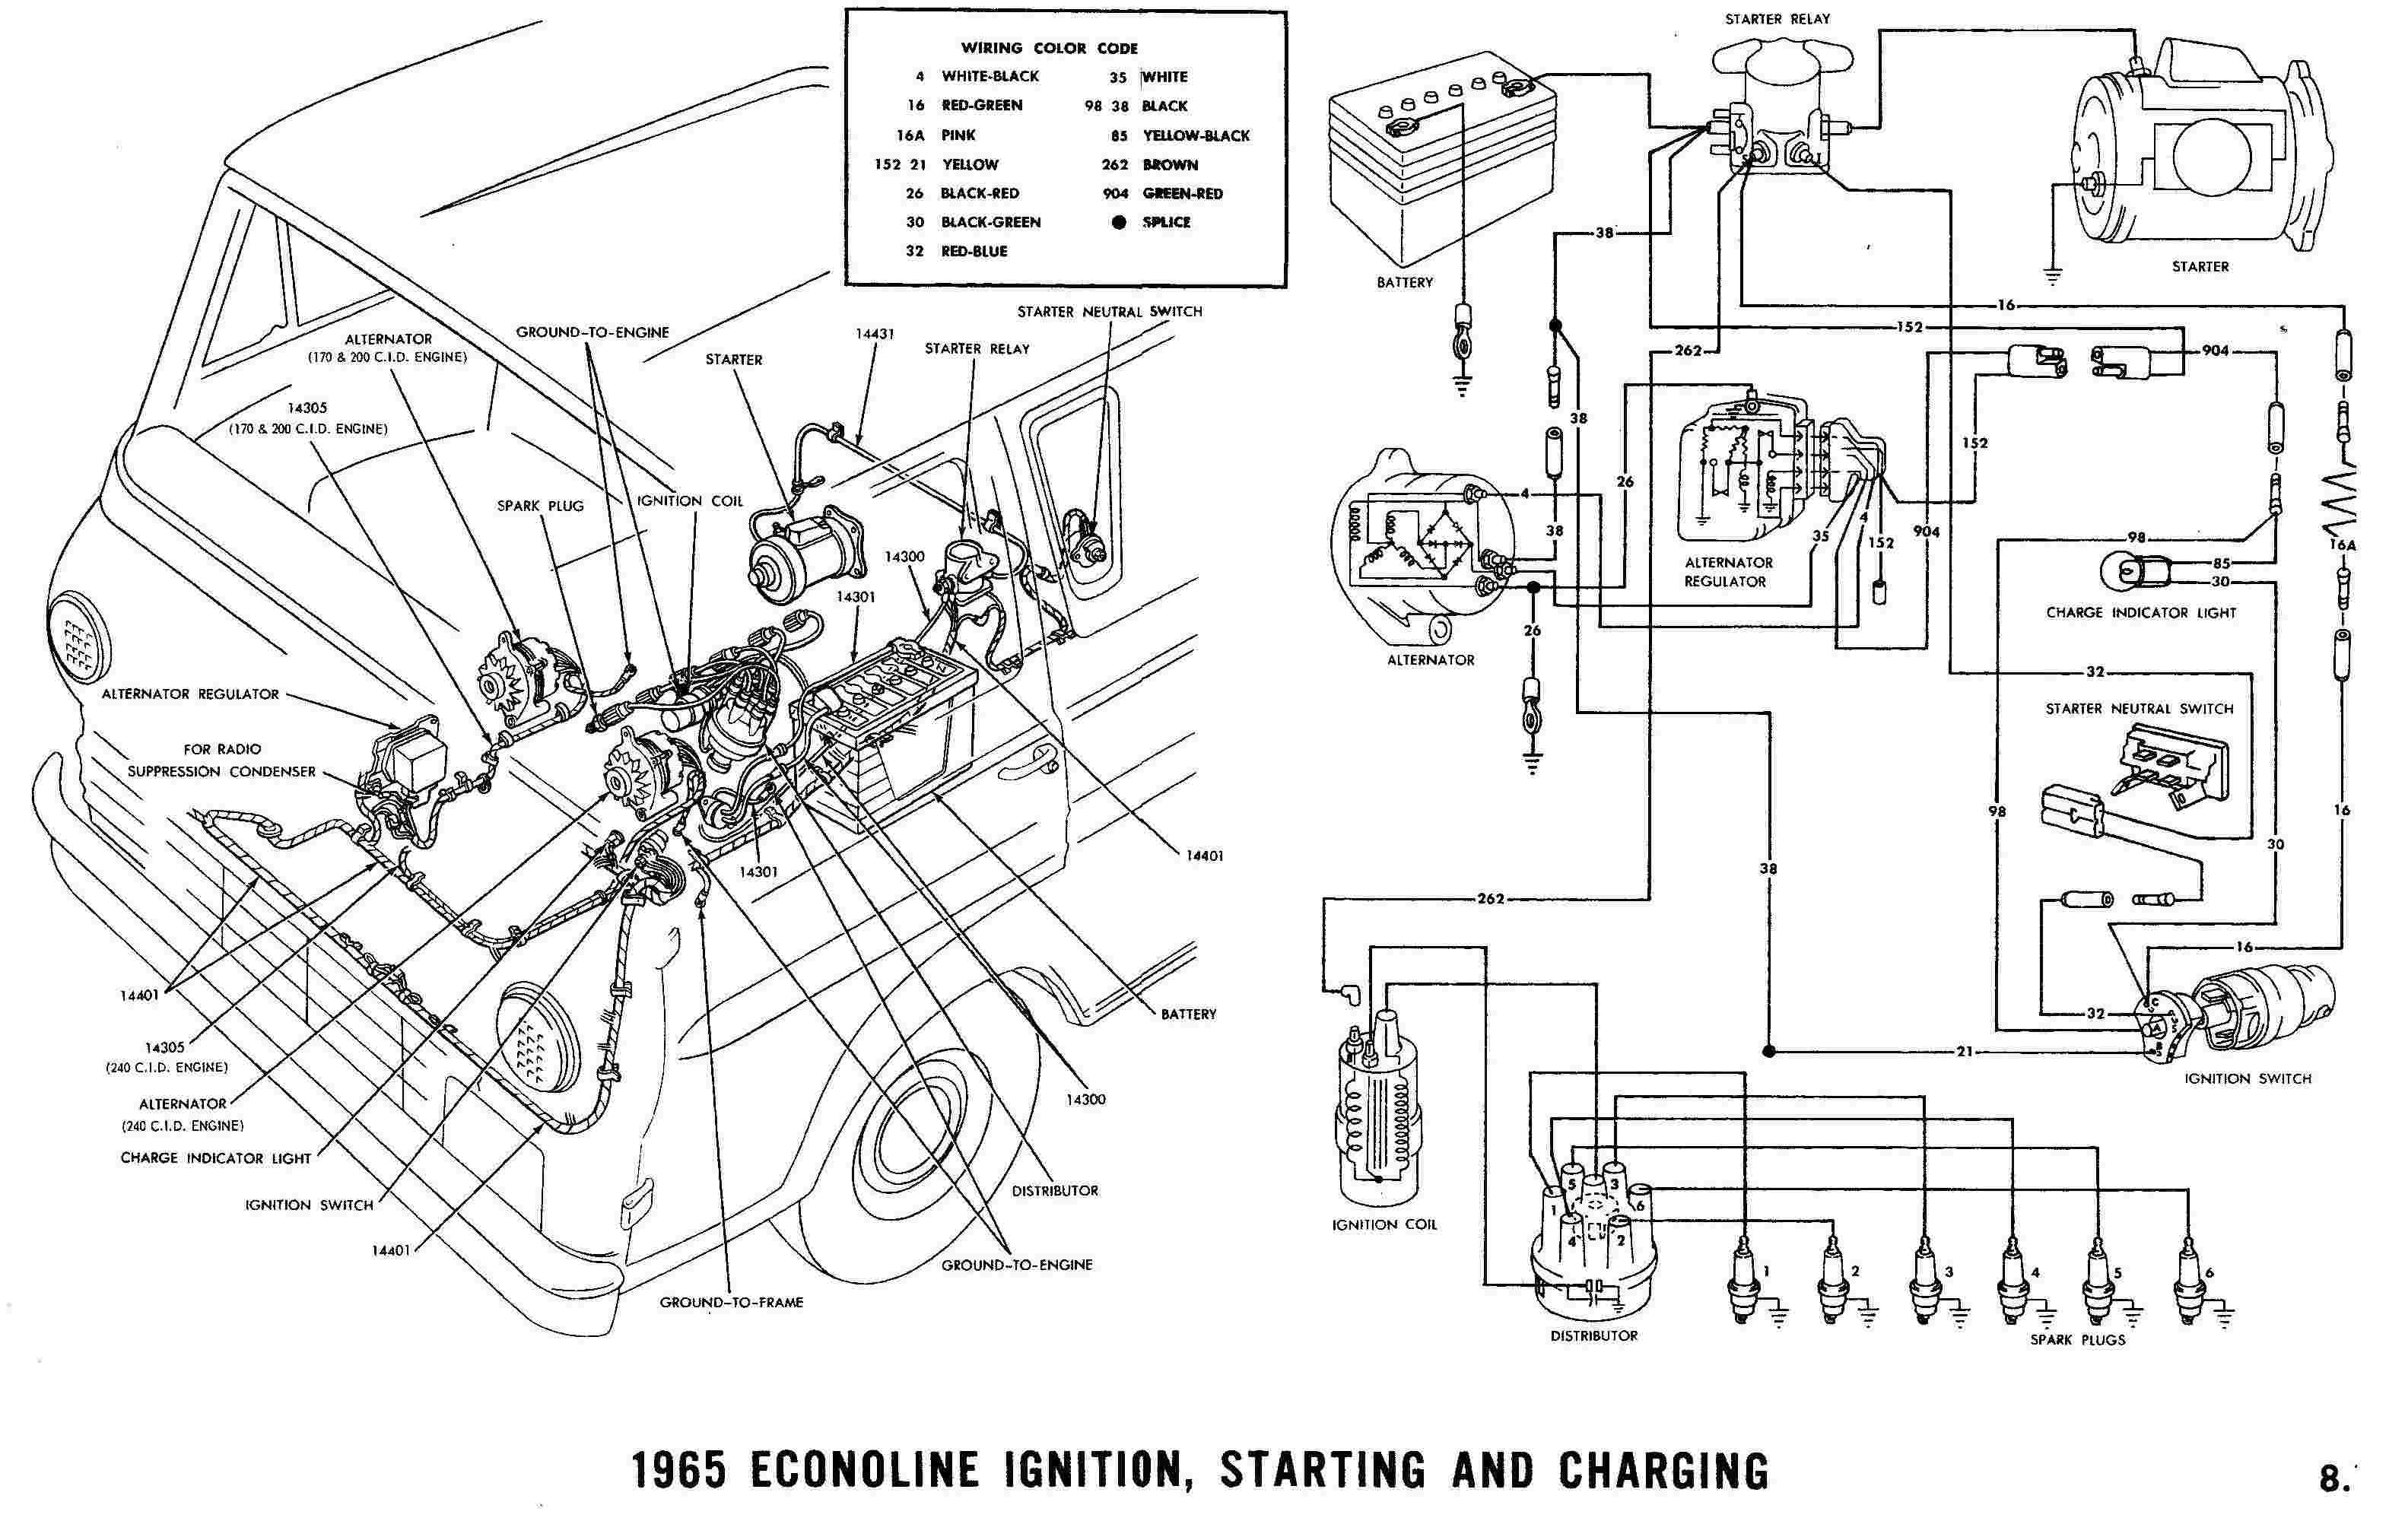 Engine/doghouse wiring harness